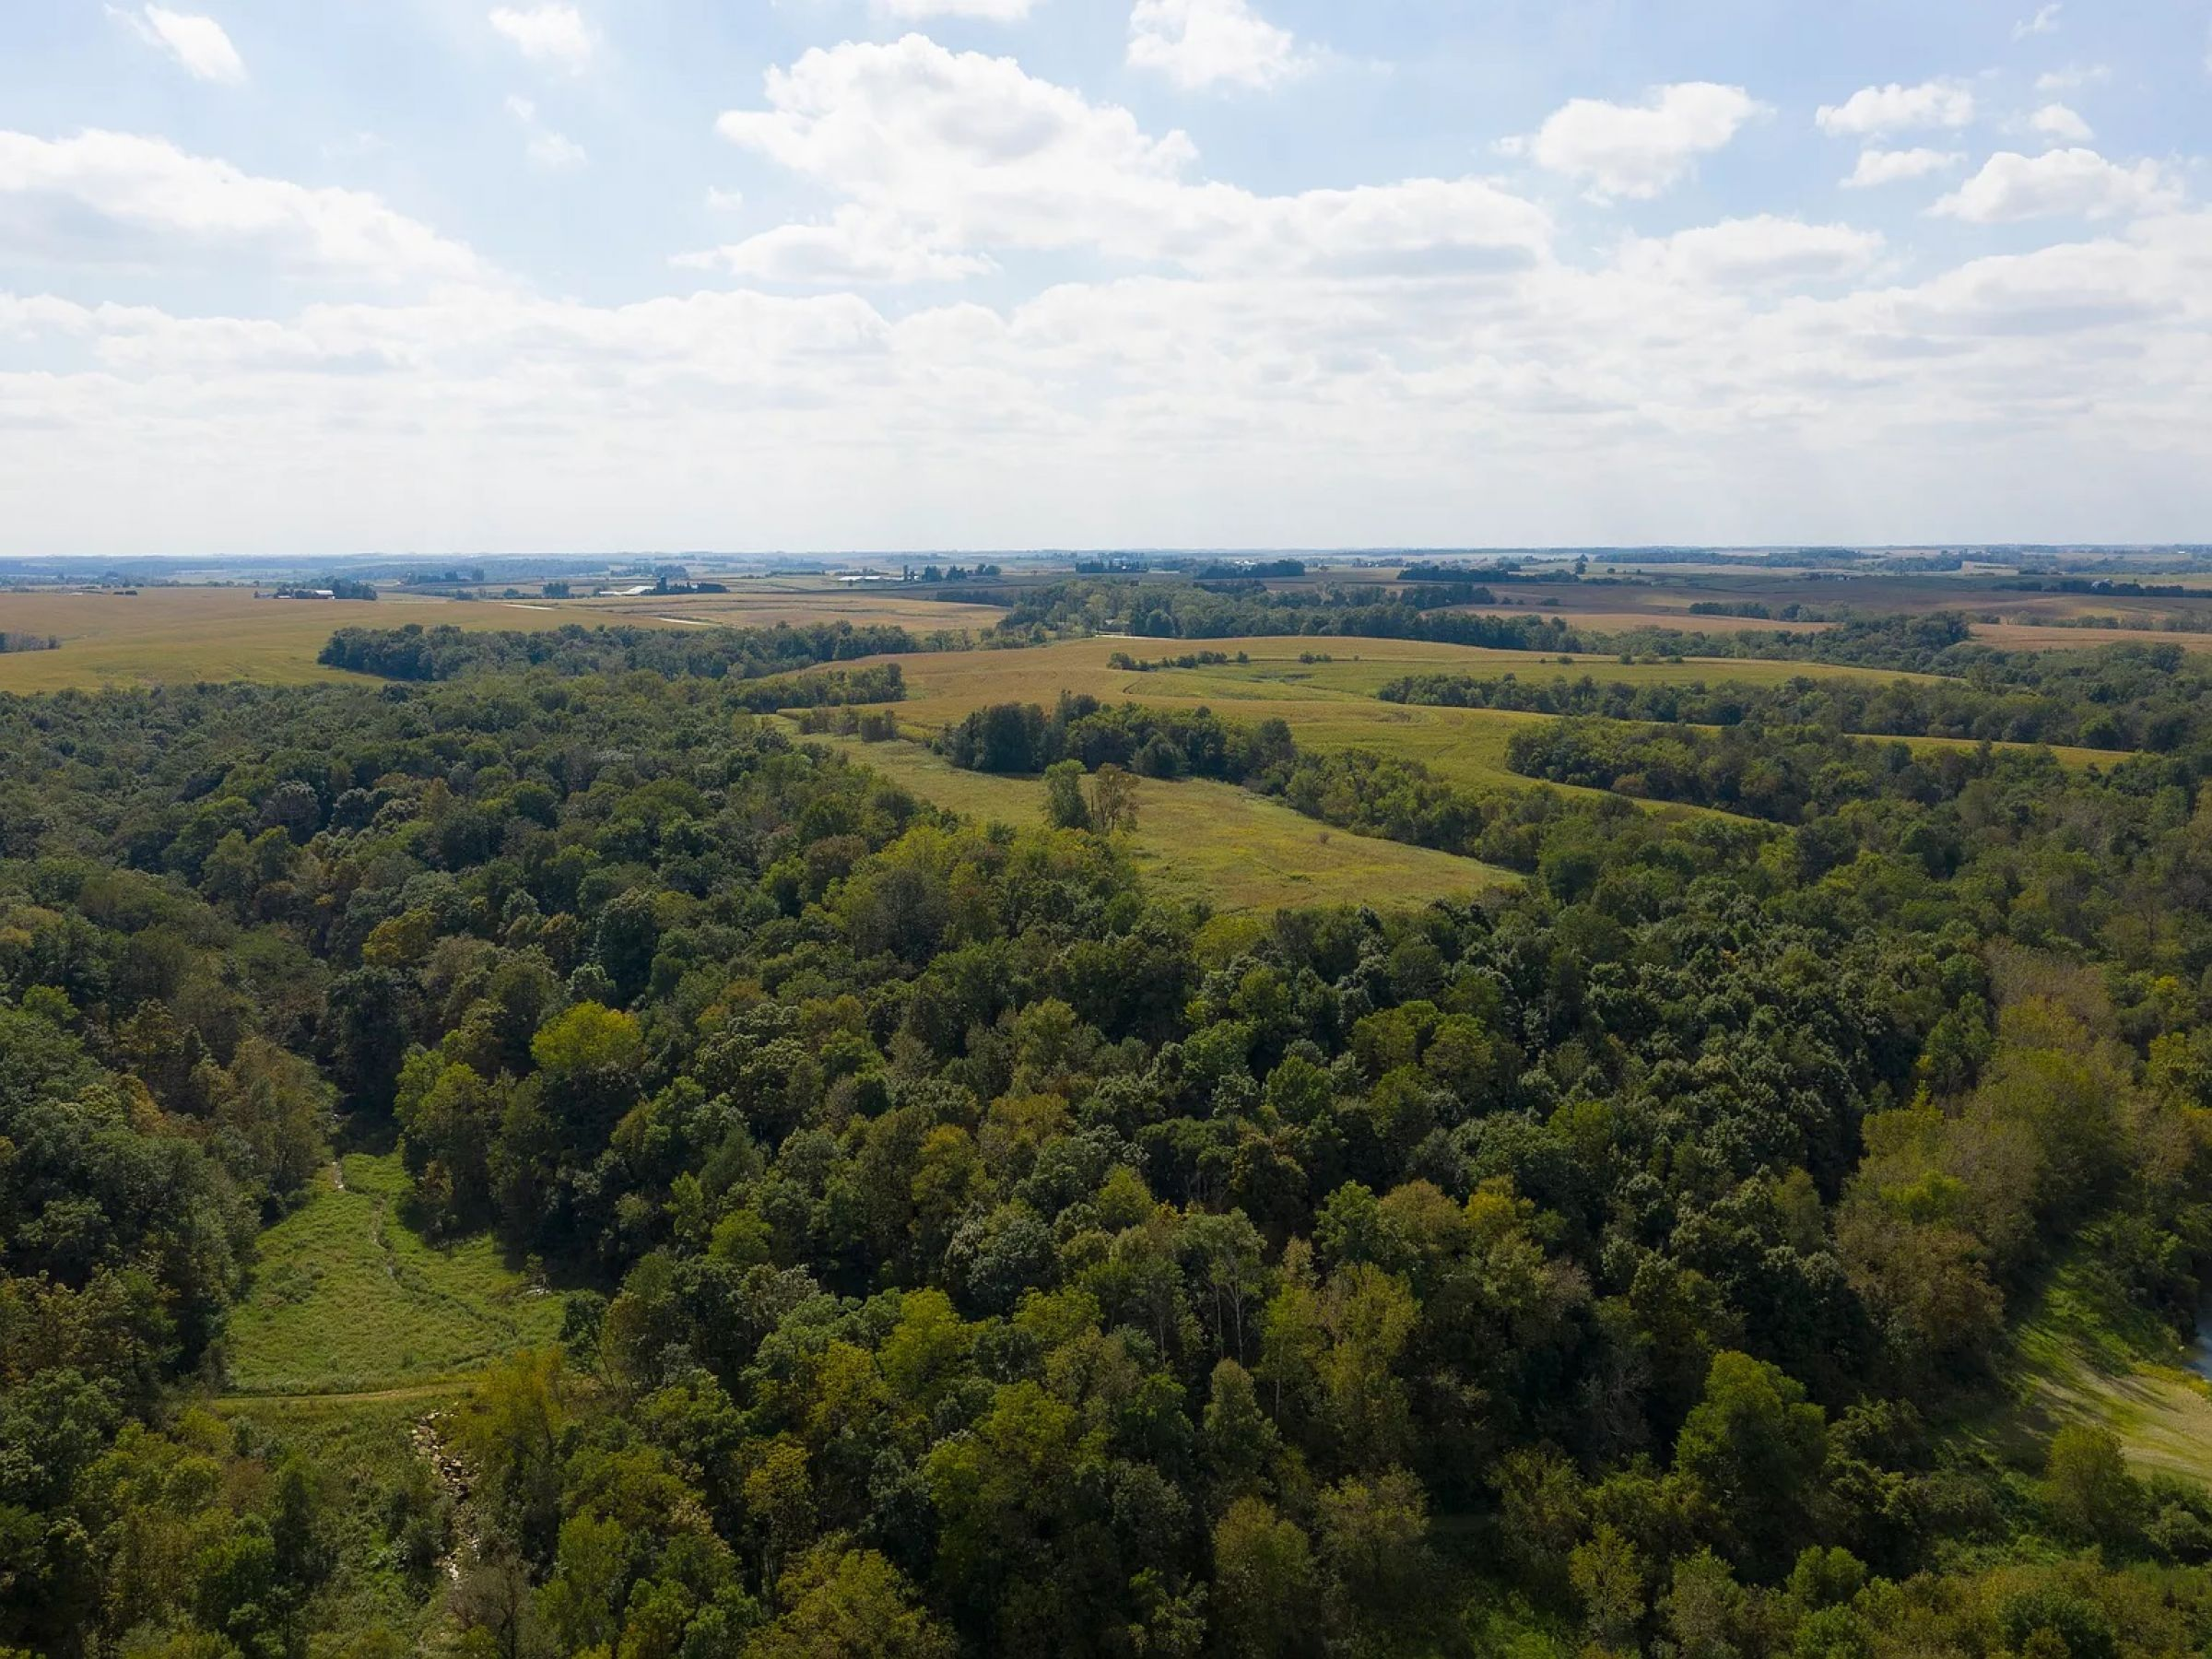 land-fayette-county-iowa-495-acres-listing-number-14992-10-2020-05-08-210244.jpg